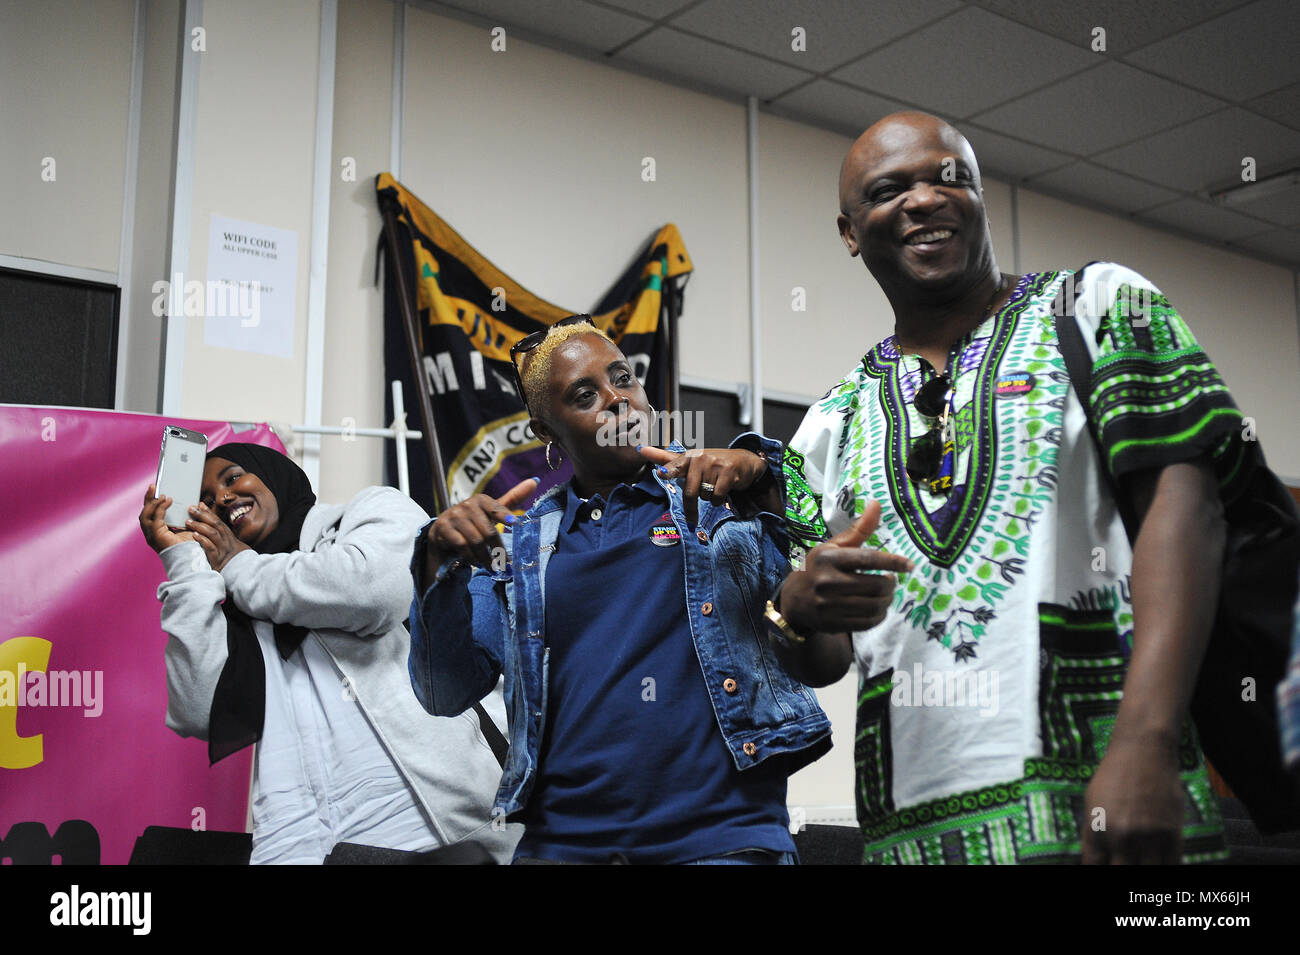 Birmingham, England. 2nd June, 2018.  Members of the audience dancing at the close of the Midlands TUC and Stand Up to Racism regional summit, 'Confronting the Rise in Racism', at the Midlands TUC Offices. Kevin Hayes/Alamy Live News - Stock Image